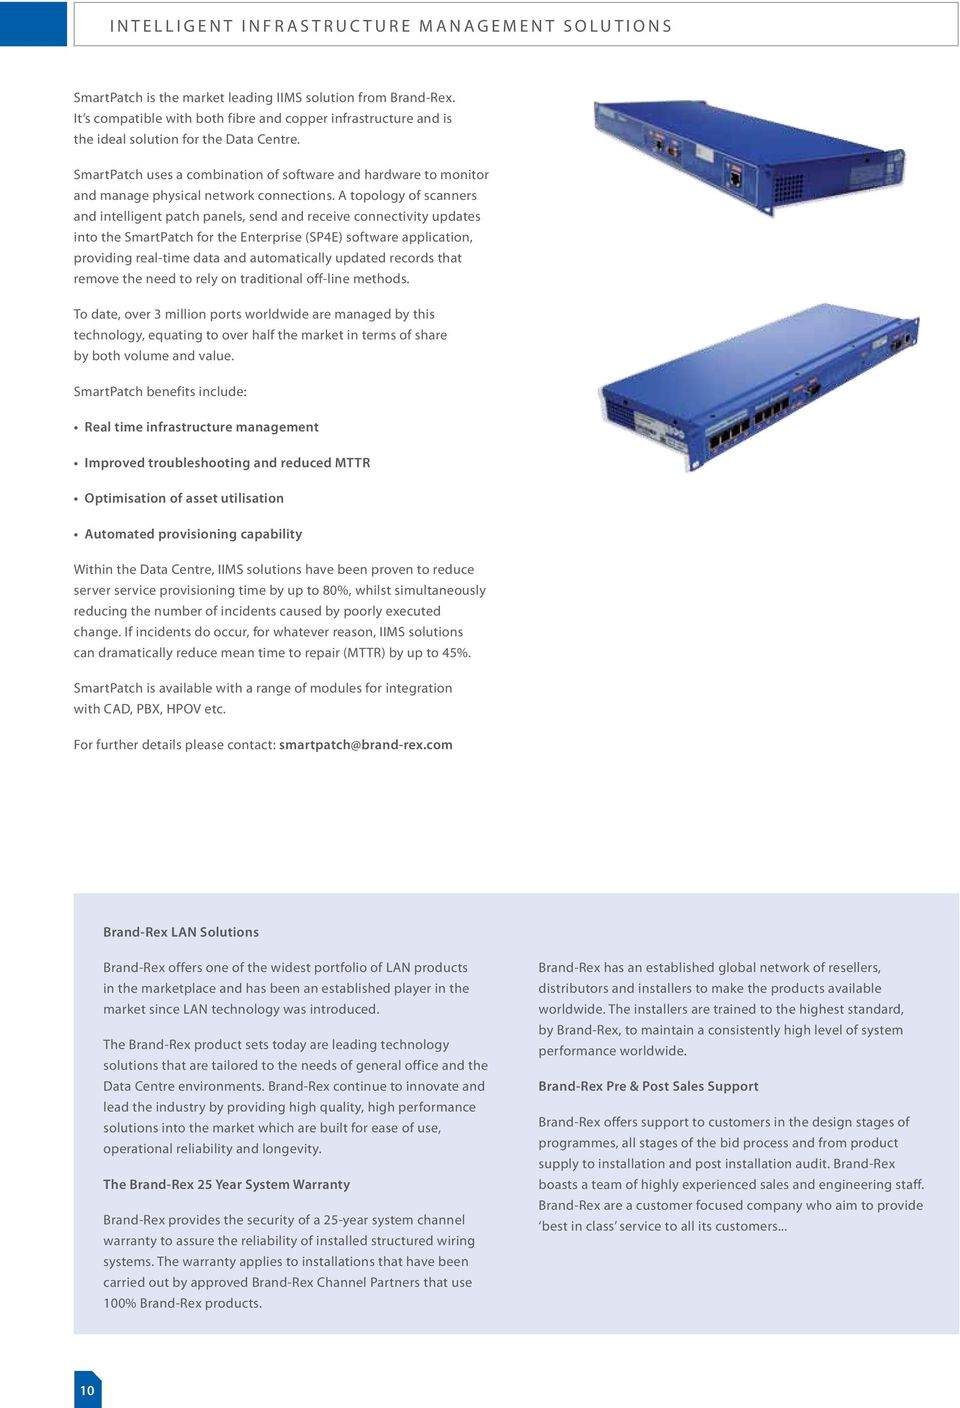 Data Centre Solutions Pdf Structured Wiring Panel Design Smartpatch Uses A Combination Of Software And Hardware To Monitor Manage Physical Network Connections